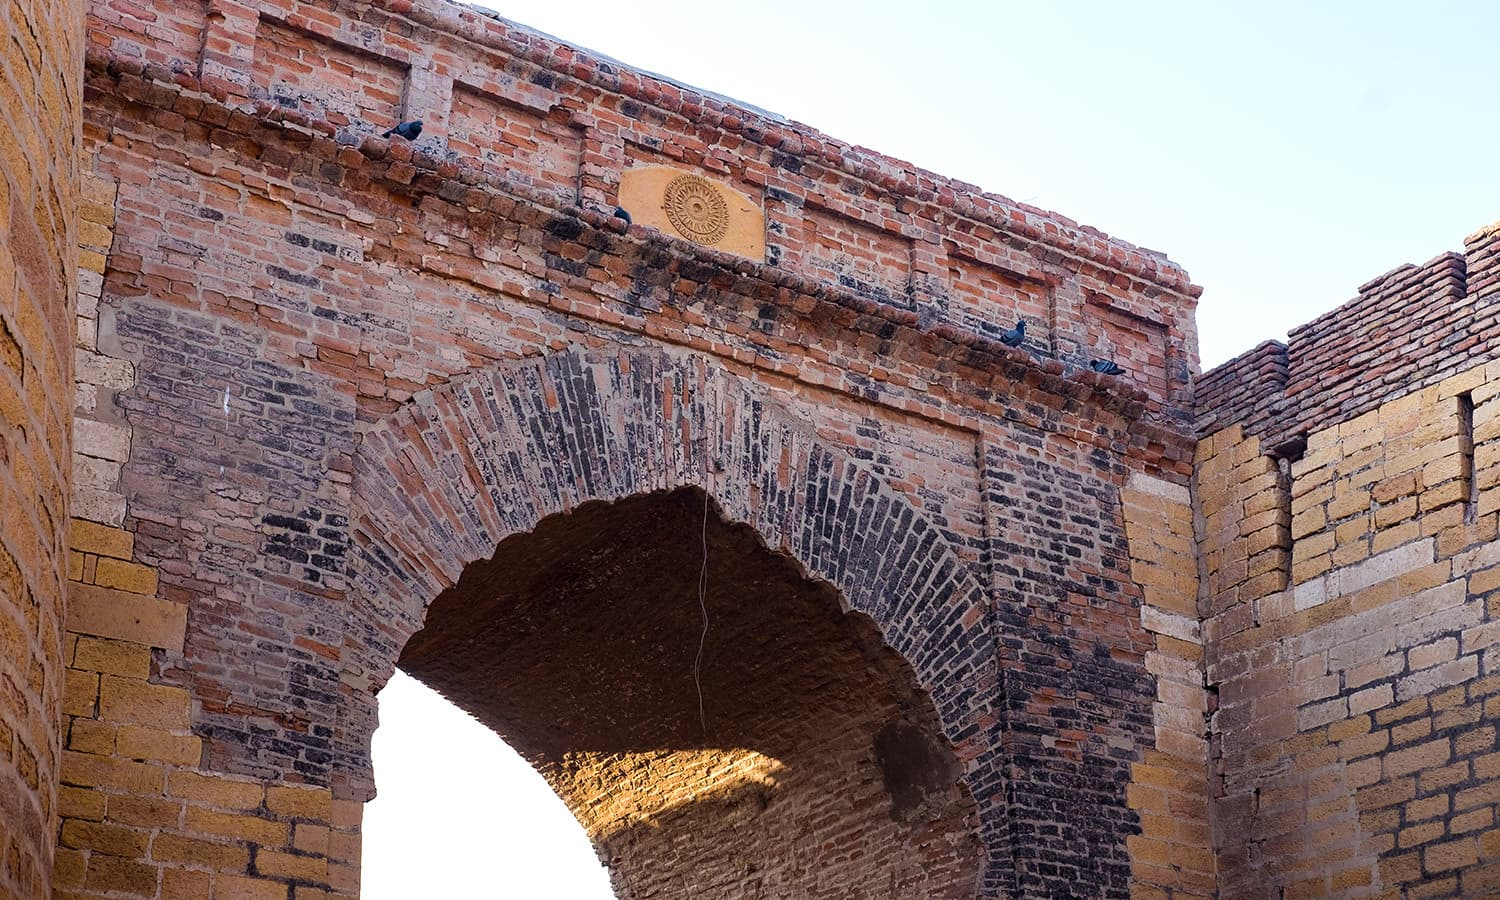 The imposing entrance of the Umerkot Fort.